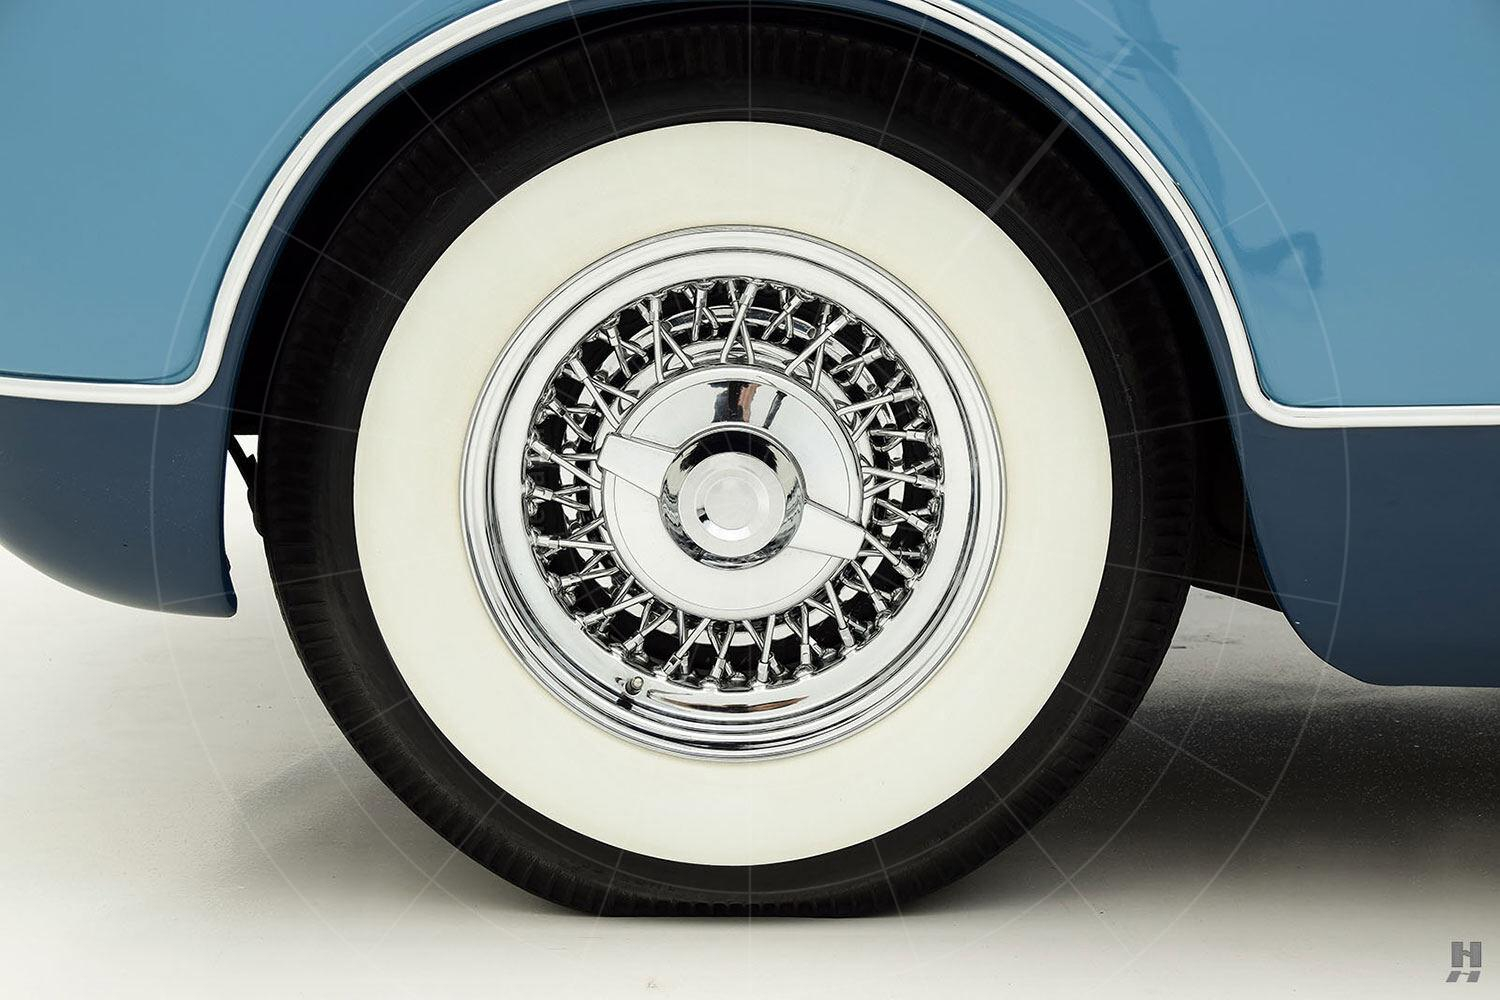 Chrysler Ghia special coupé front wheel Pic: Hyman Ltd | Chrysler Ghia special coupé front wheel